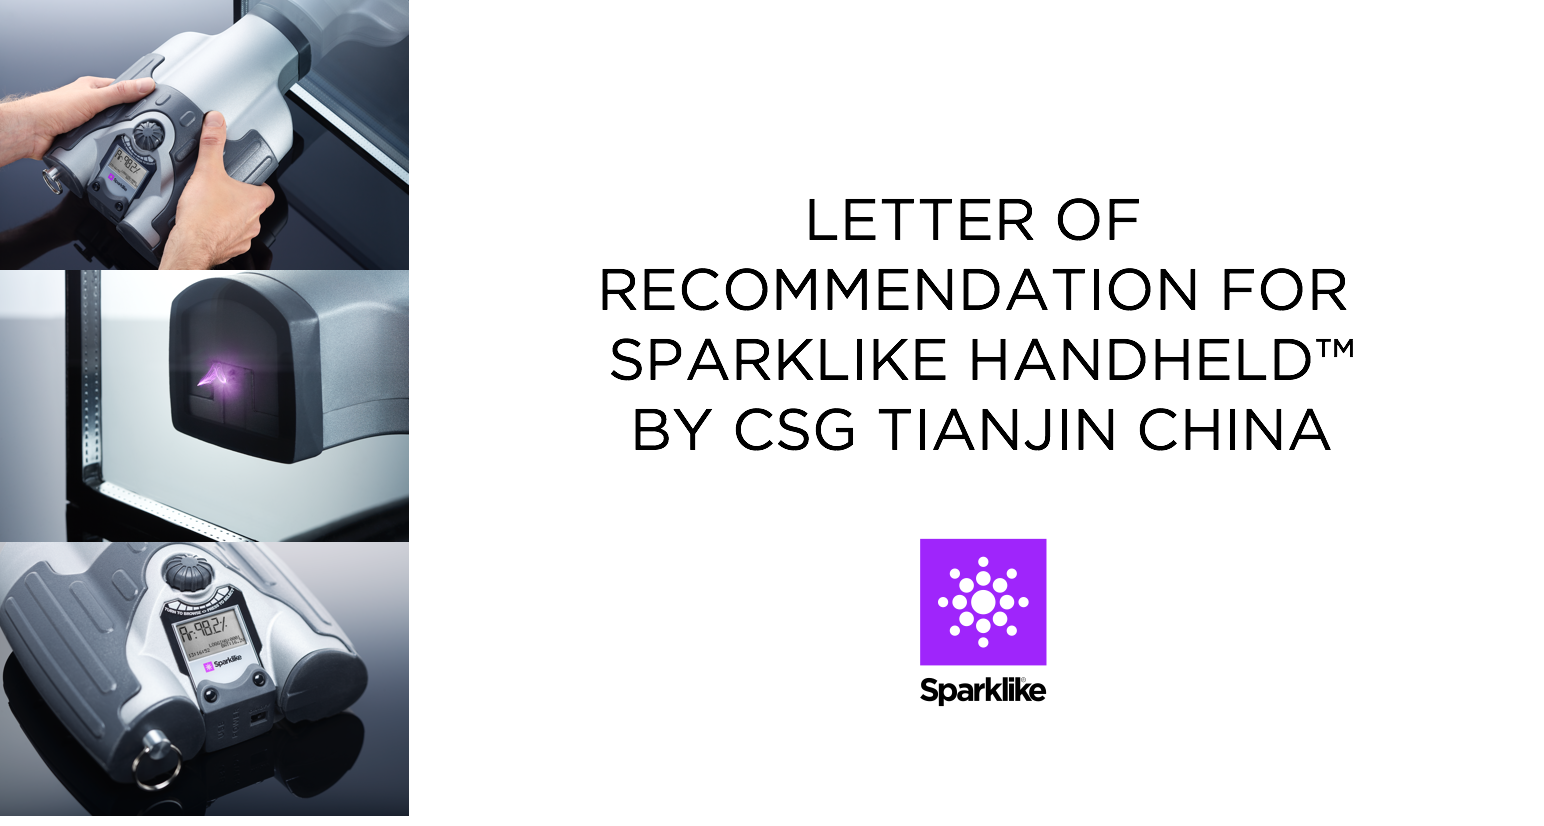 Letter of recommendation for Sparklike Handheld by CSG Tianjin China